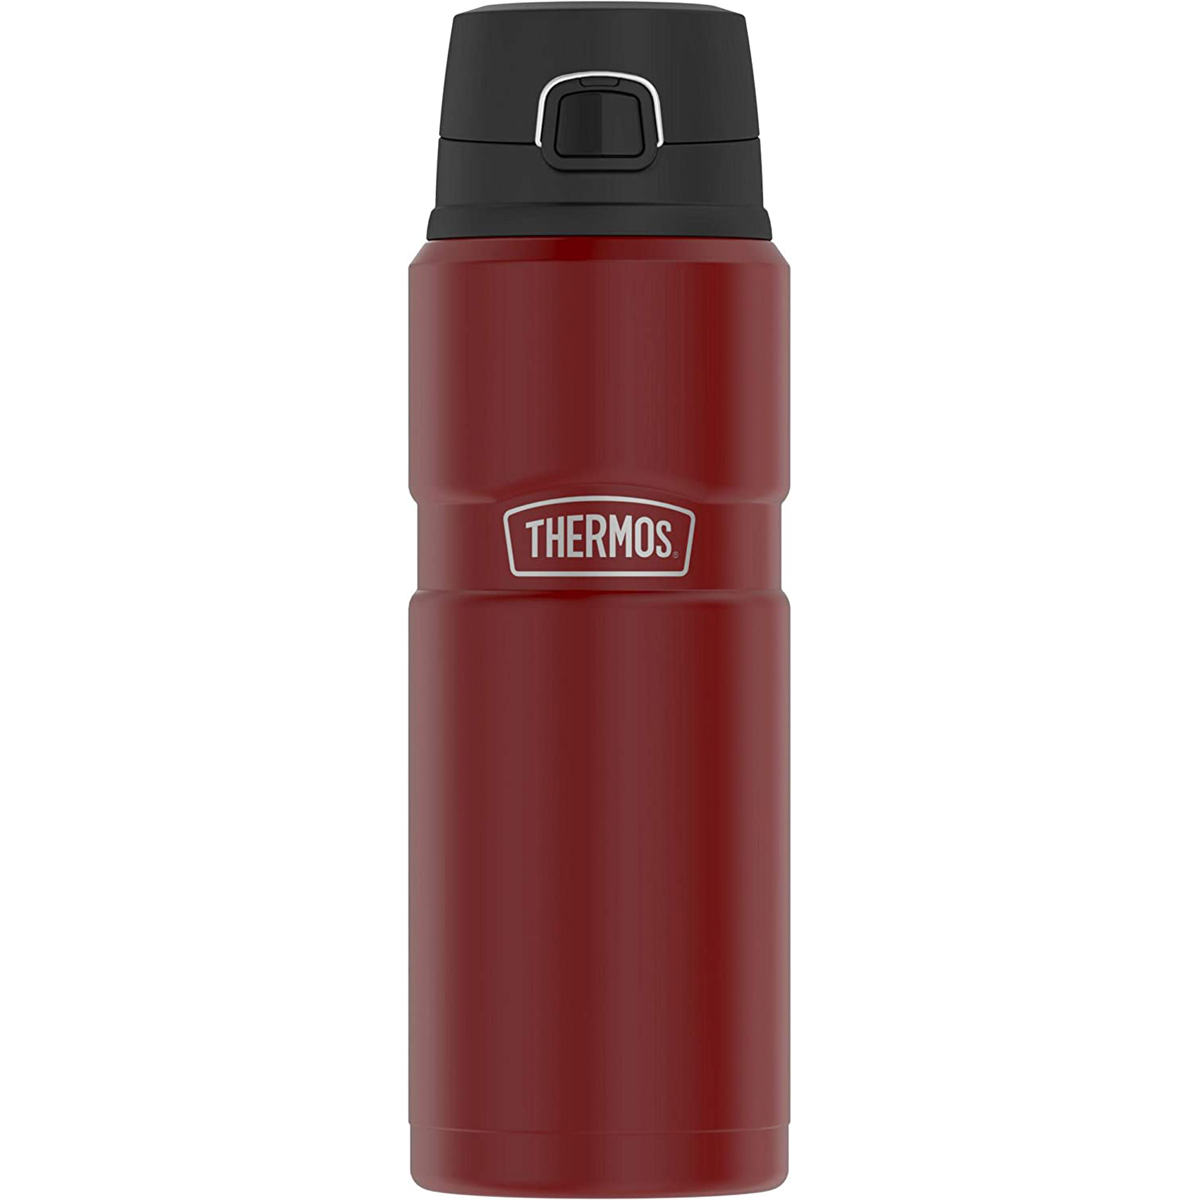 thumbnail 12 - Thermos 24 oz. Stainless King Vacuum Insulated Stainless Steel Drink Bottle